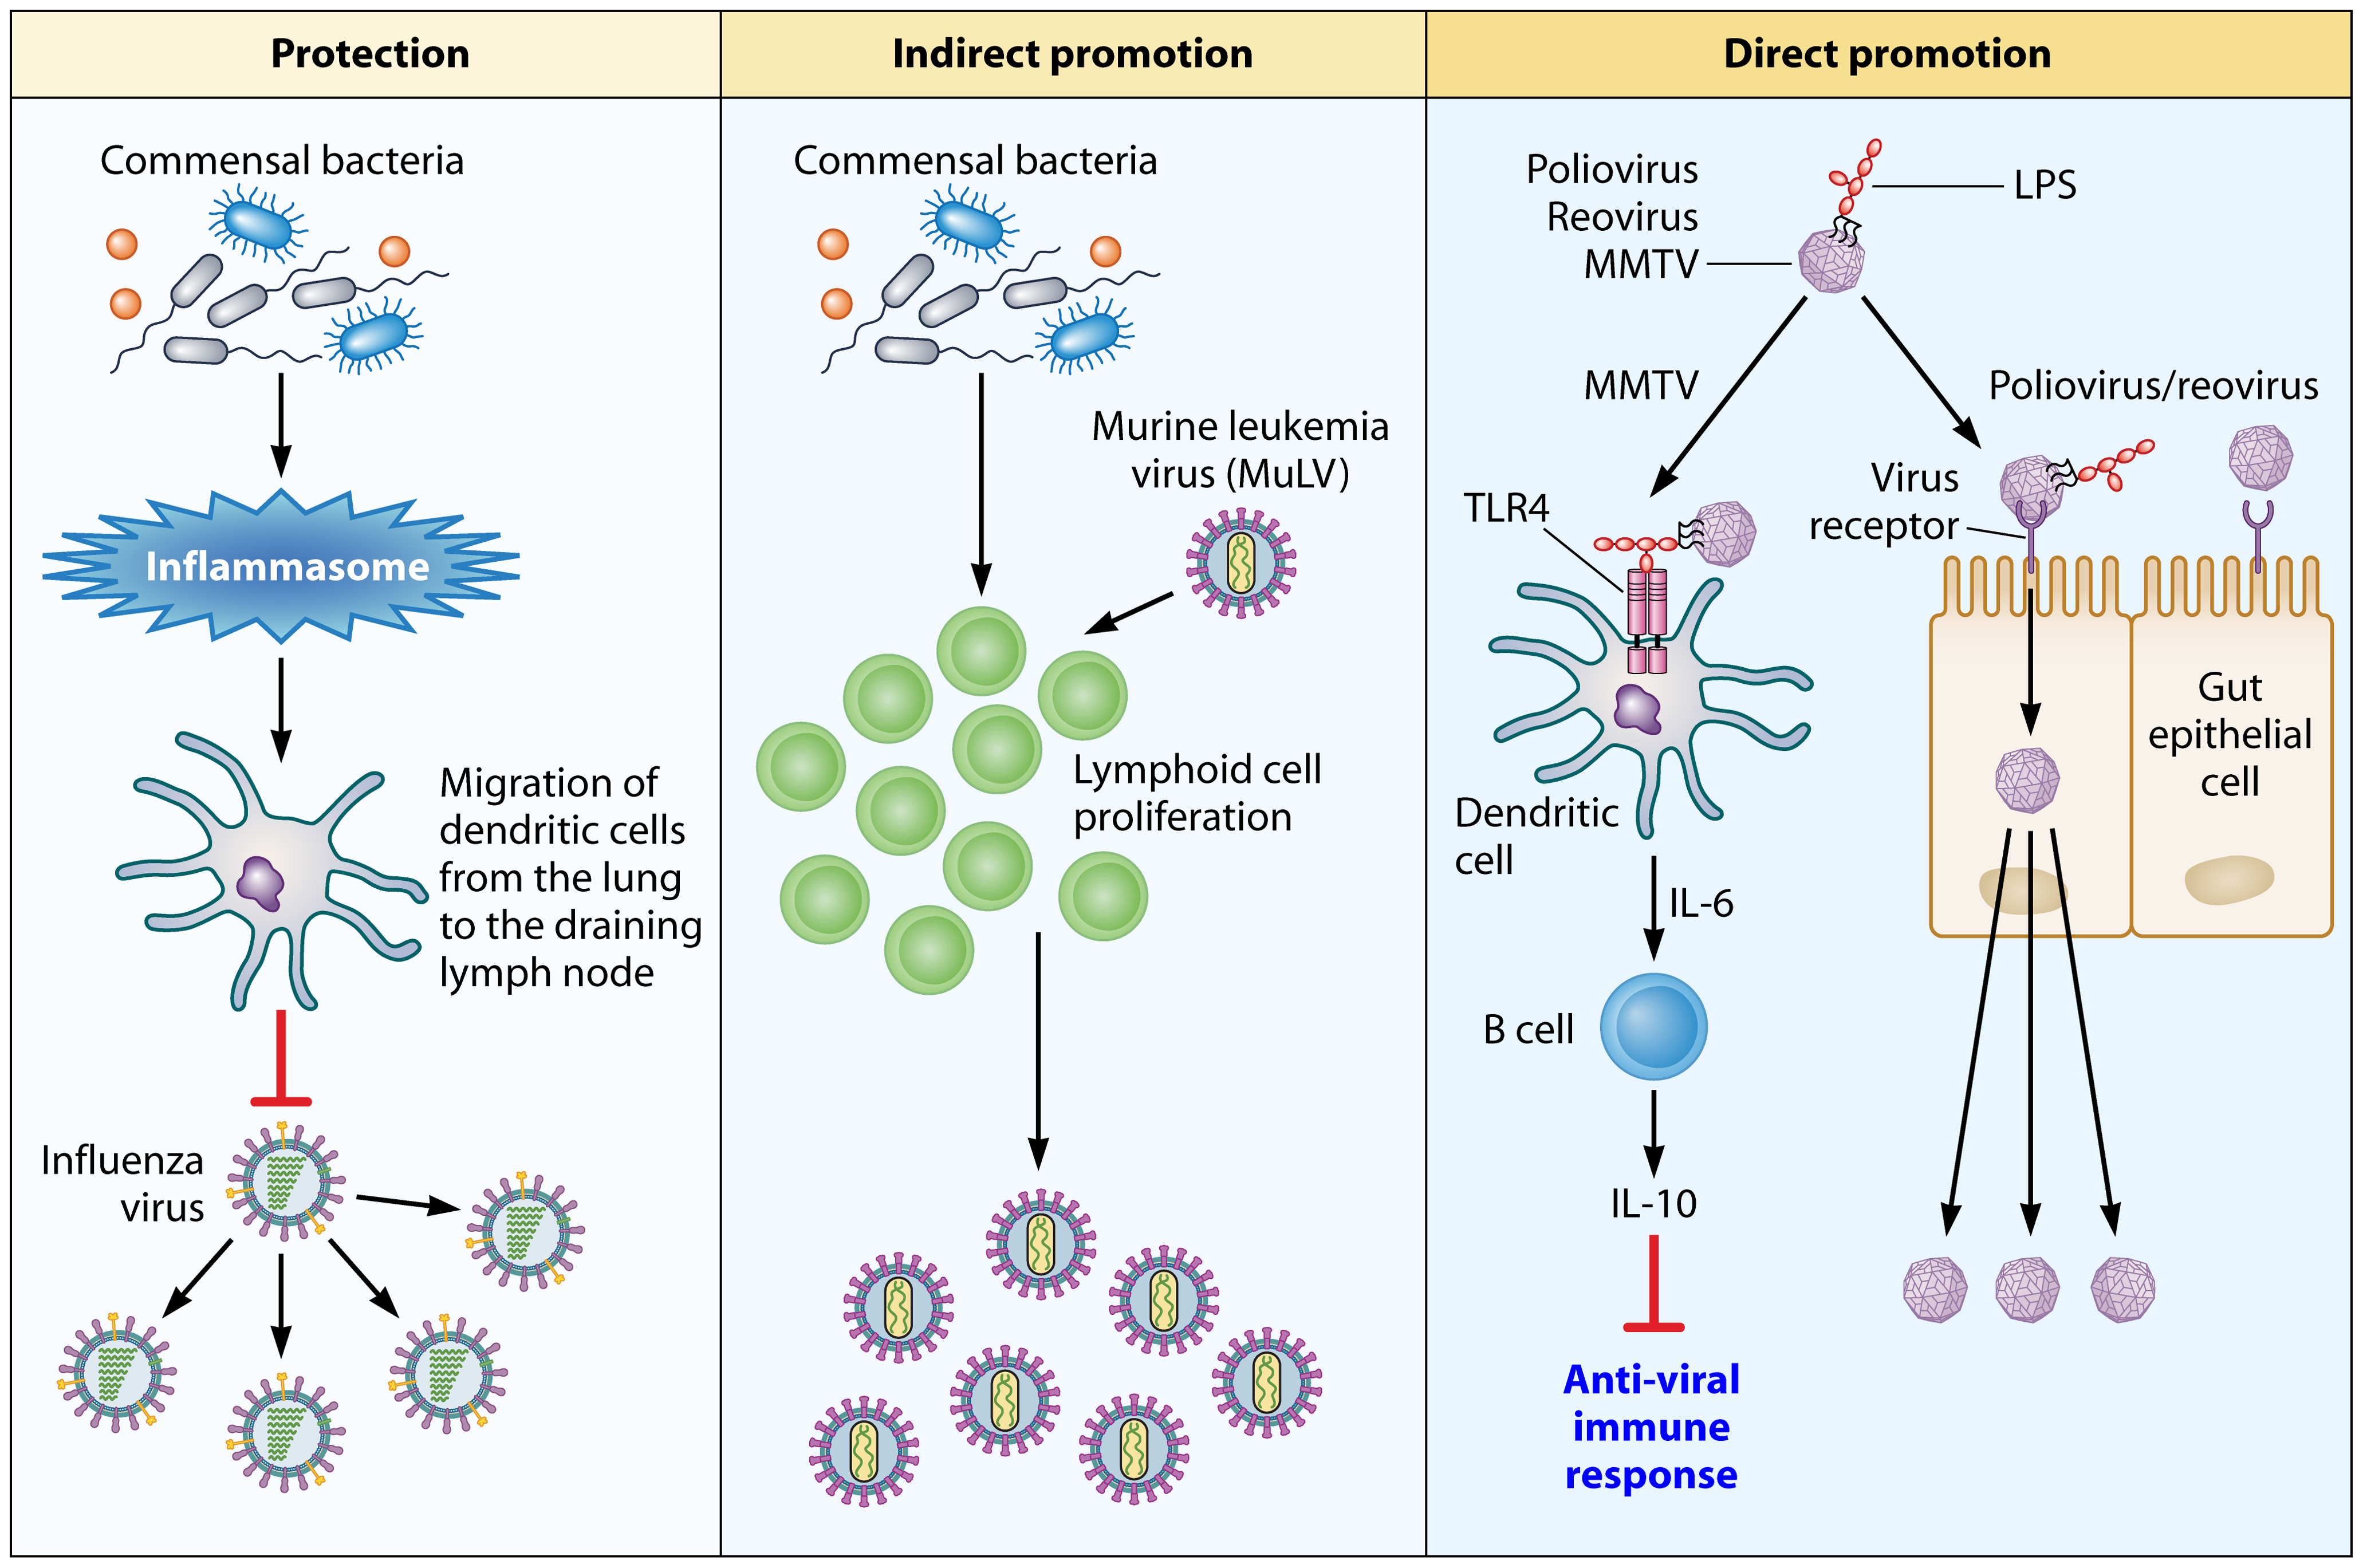 An overview of how the commensal microbiota influence viral pathogenesis.